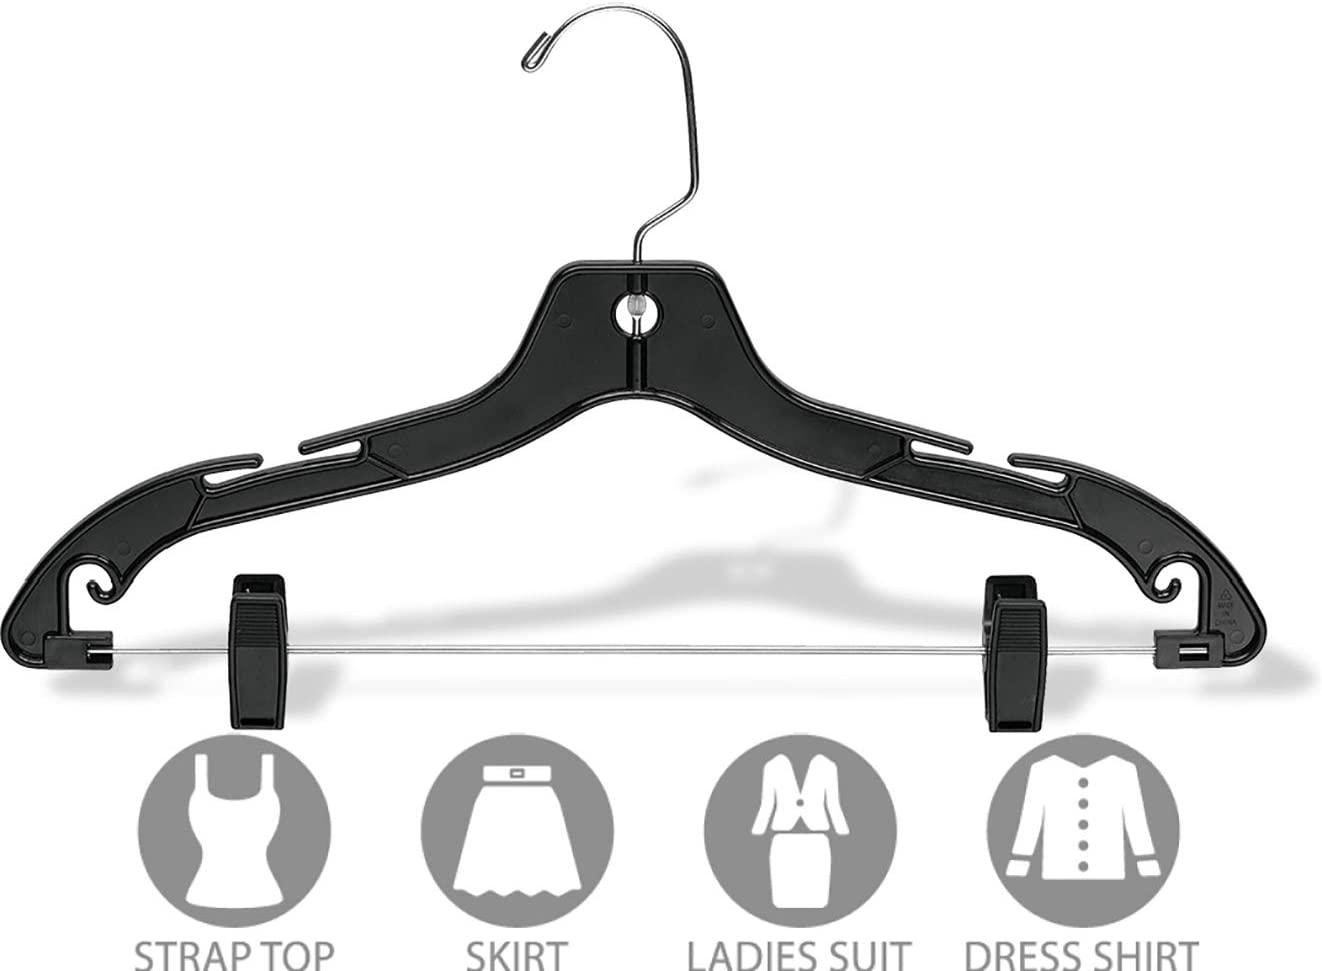 Extra Strong 1//2 Inch Thick Hangers with 360 Degree Chrome Swivel Hook for Jacket or Uniform Box of 25 The Great American Hanger Company Heavy Duty Clear Plastic Coat Hanger,